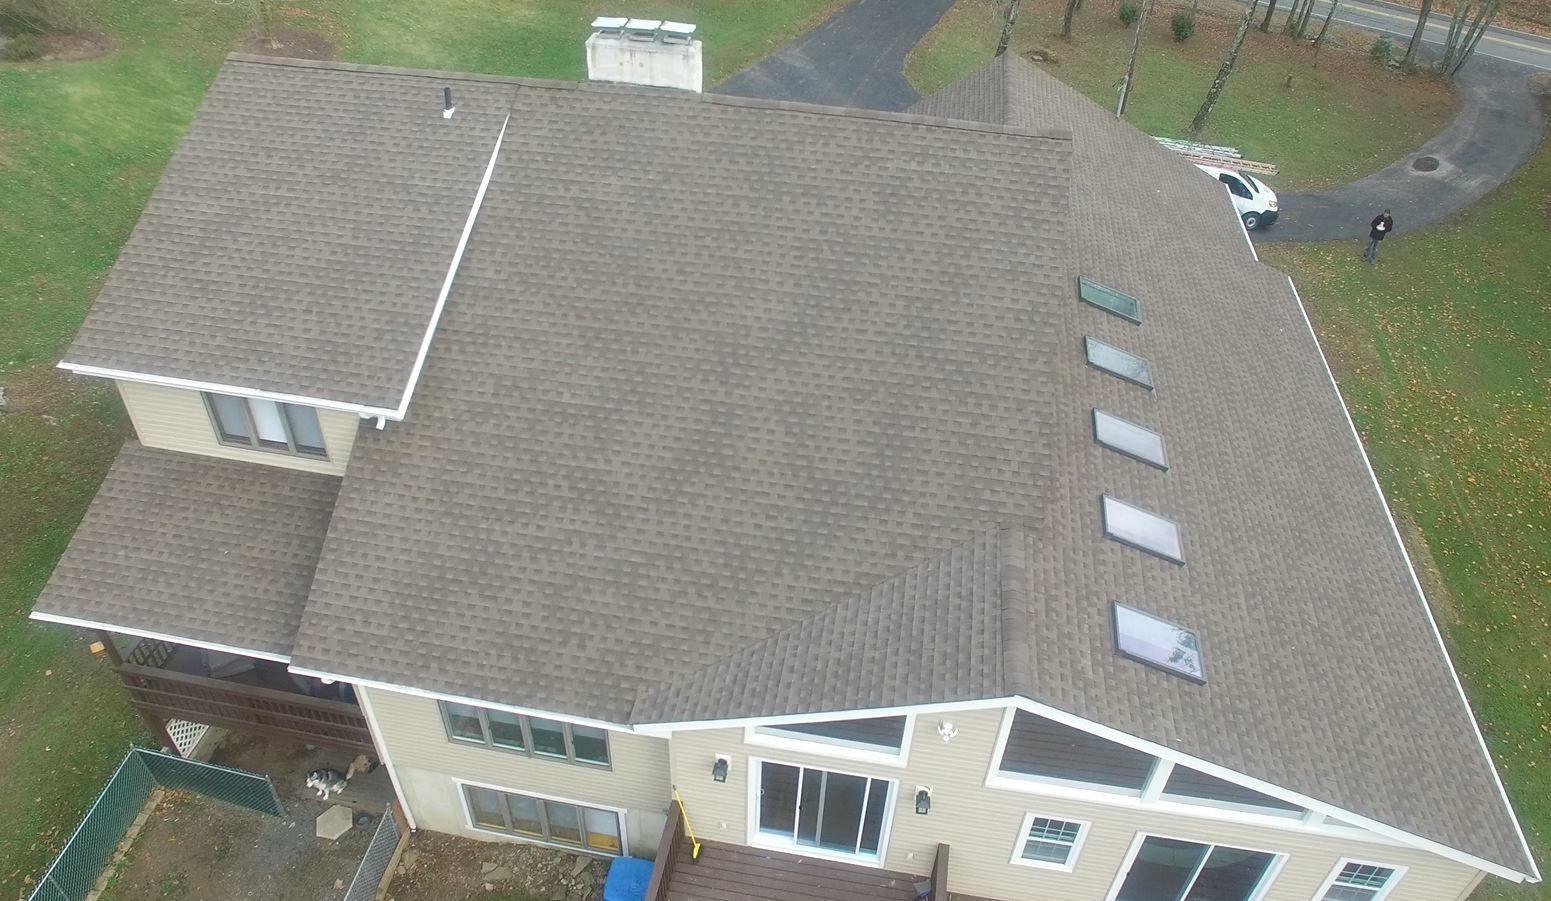 A Backyard Shot of New Shingles From the Sky